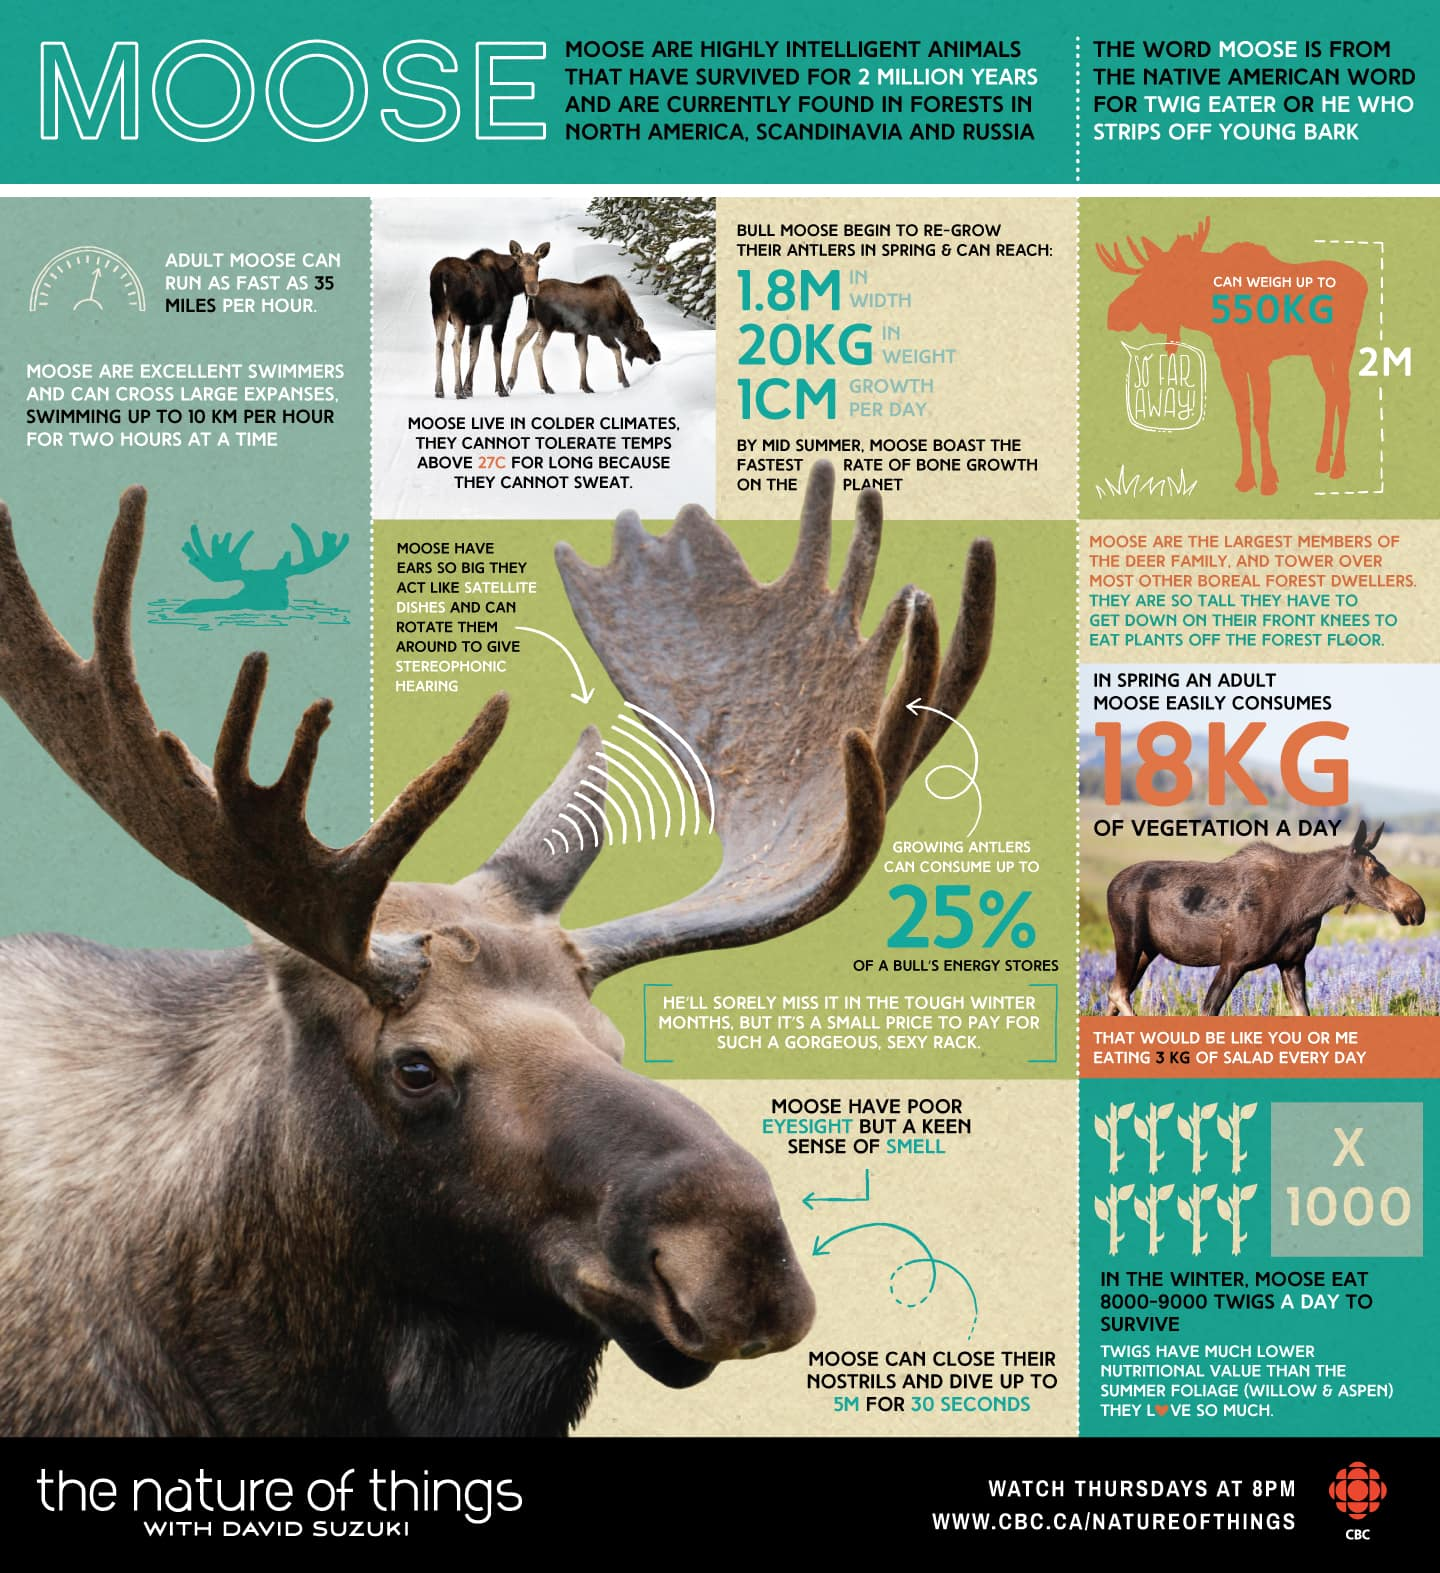 Moose are highly intelligent animals that have survived for 2 million years and are currently found in forests in North America, Scandinavia and Russia.